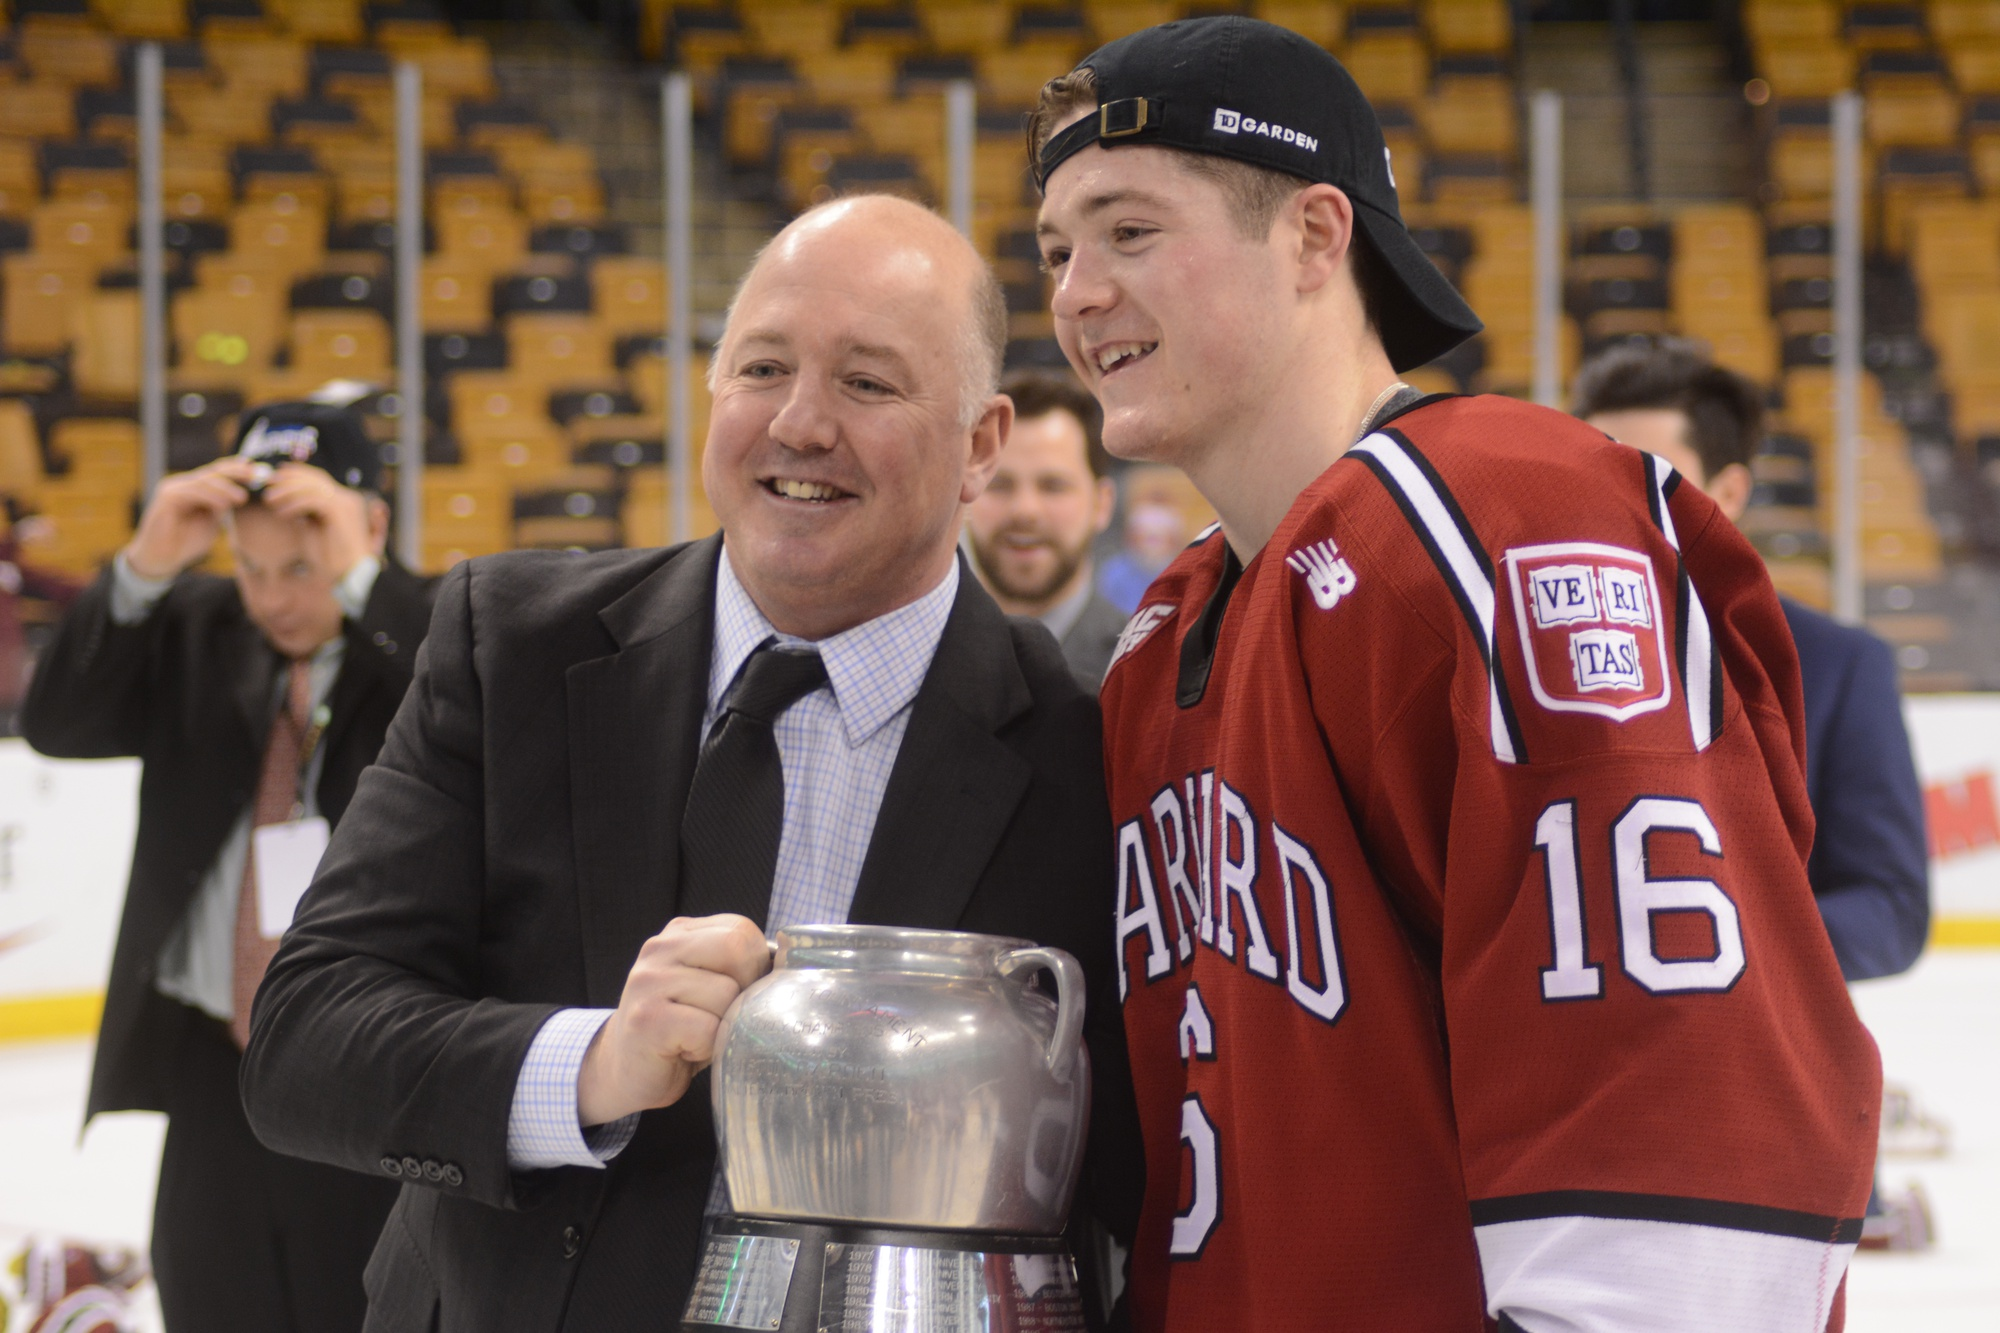 One of Ryan Donato's most compelling storylines throughout his Harvard career, and especially in his final season for the Crimson, was his relationship with his coach and father, Ted. In 2017, the duo was able to celebrate a Beanpot title.